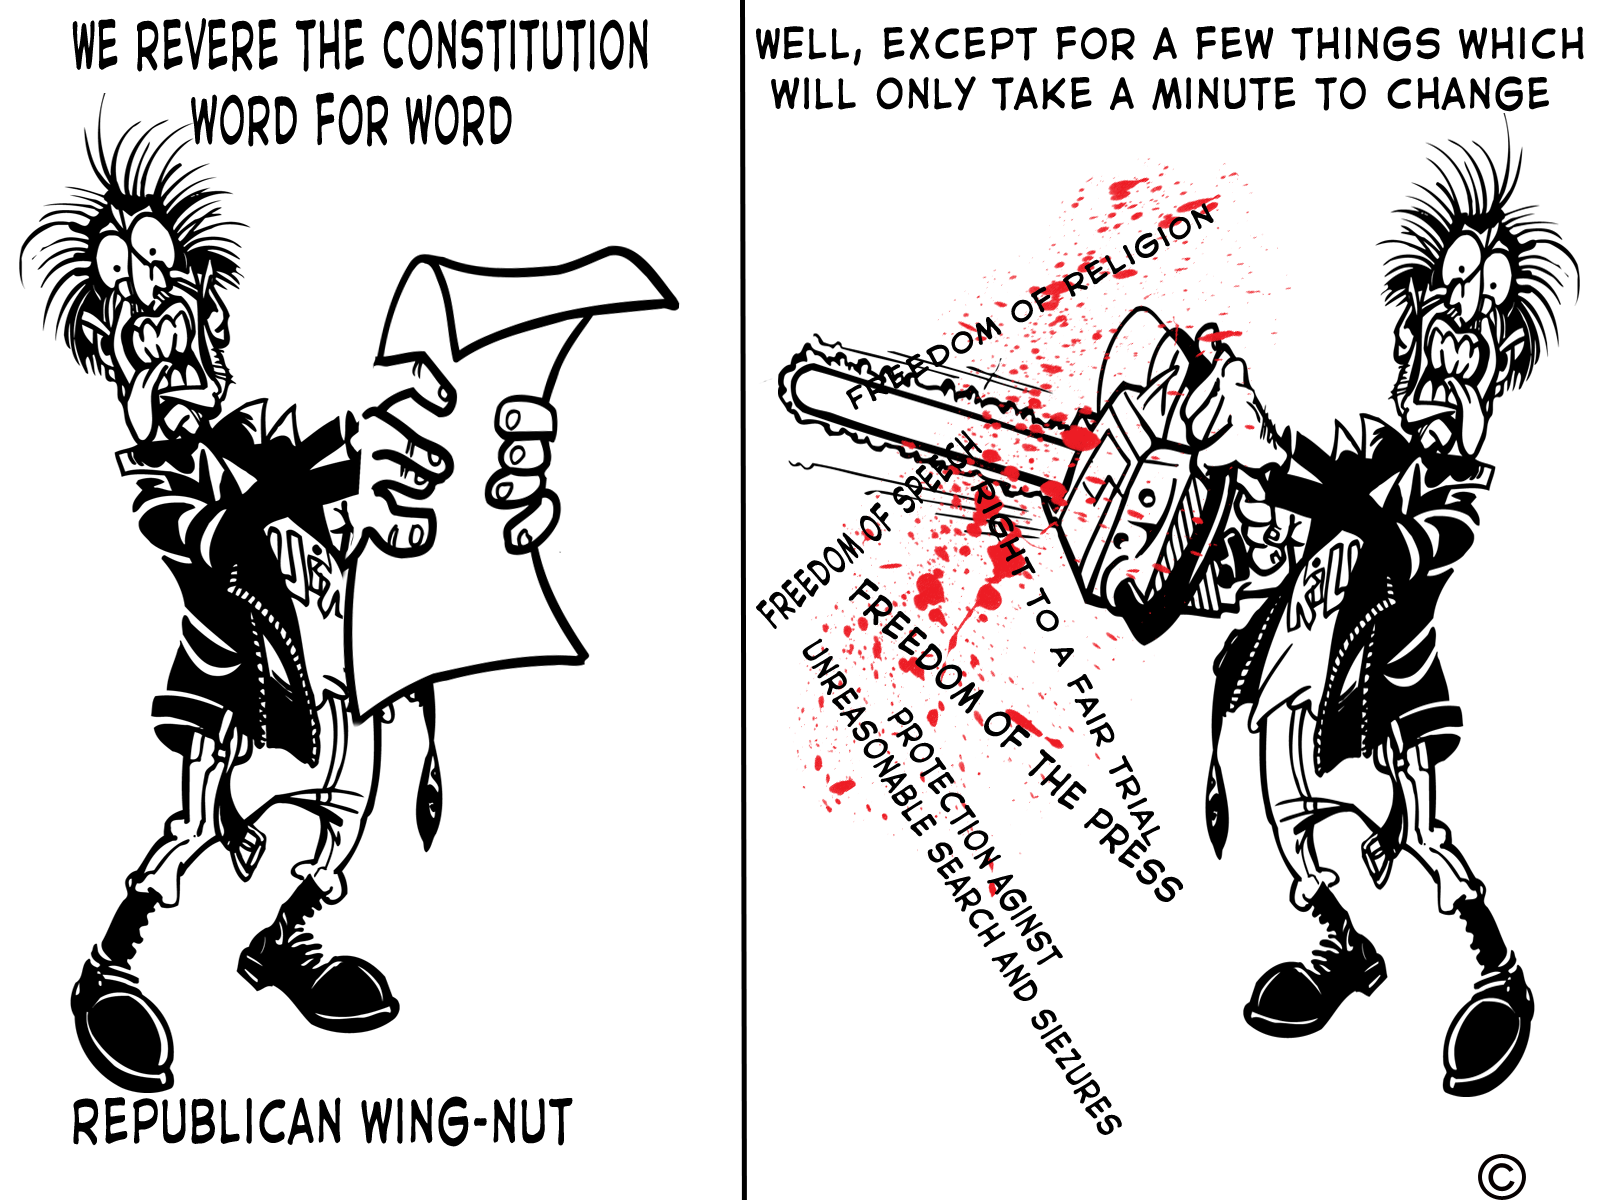 FREEDOM OR ANARCHY,Campaign of Conscience: What The